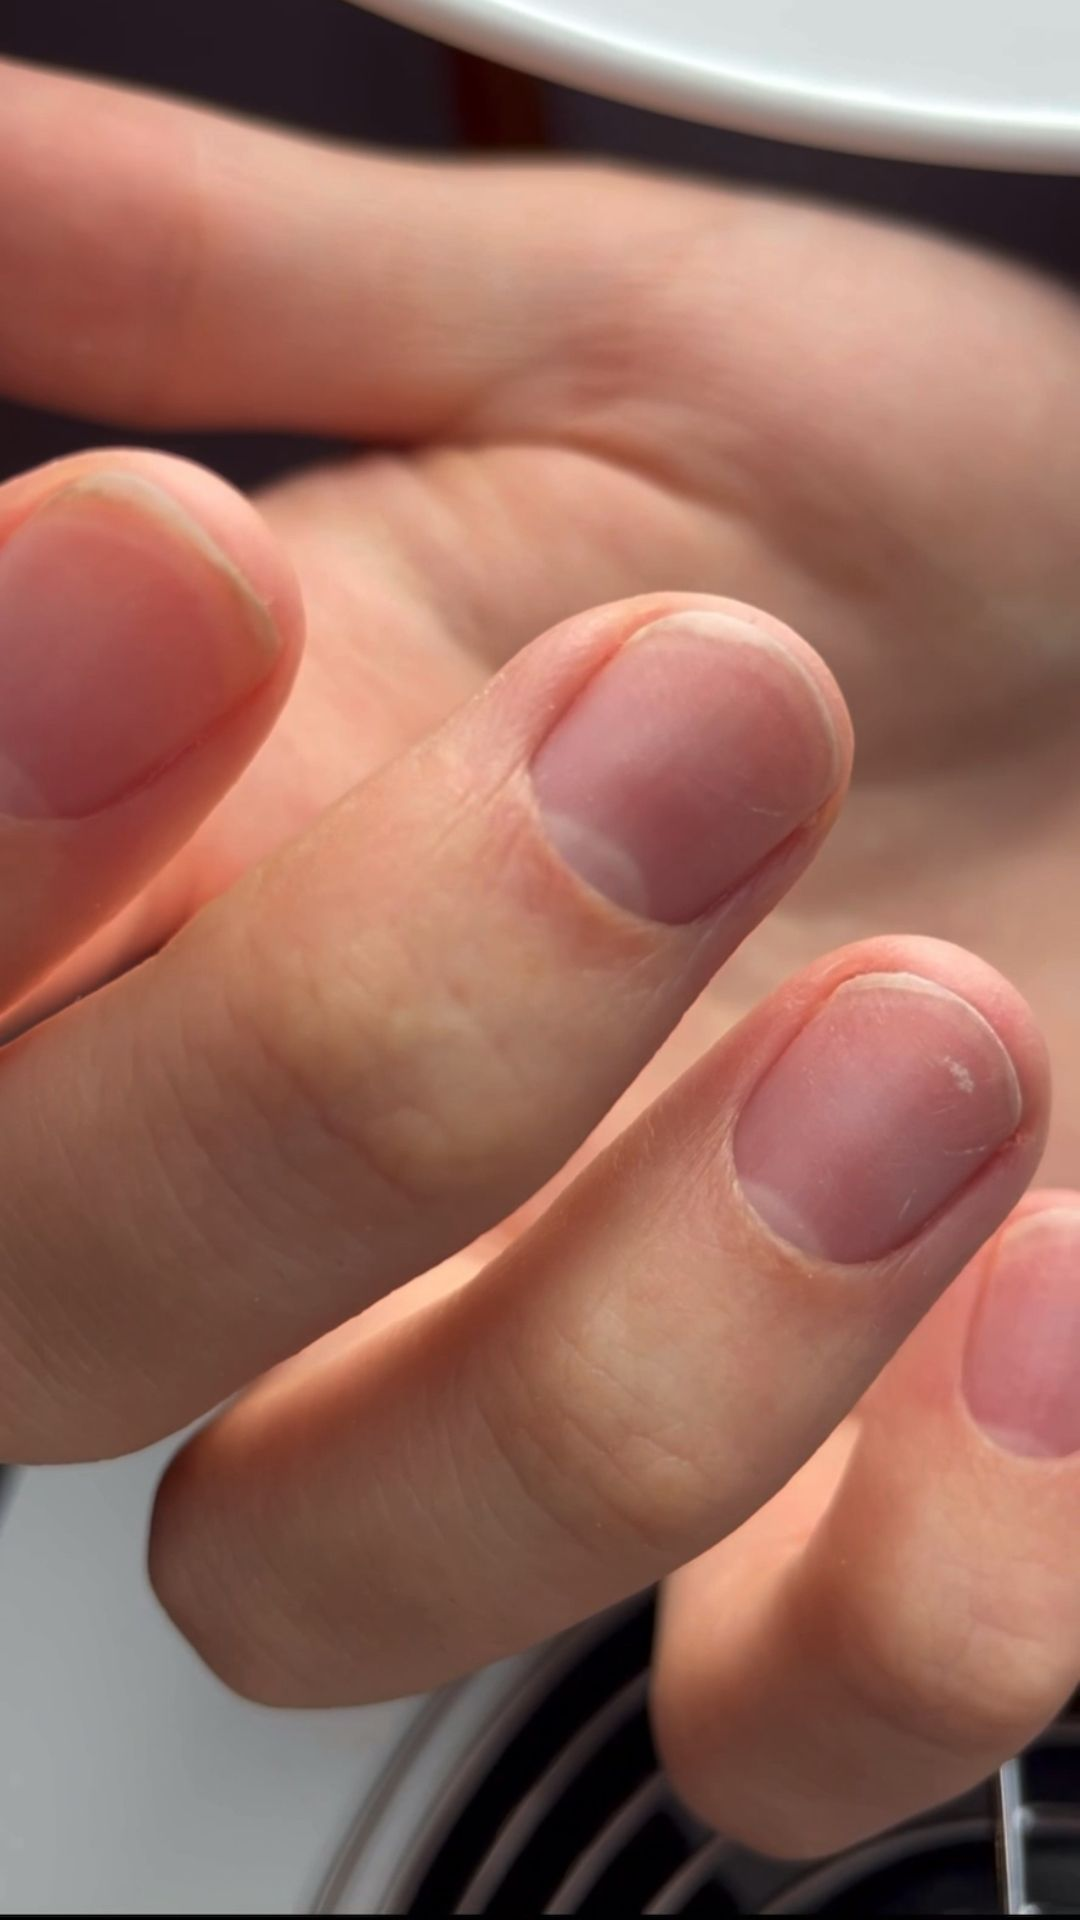 Male Nails featuring Russian Manicure